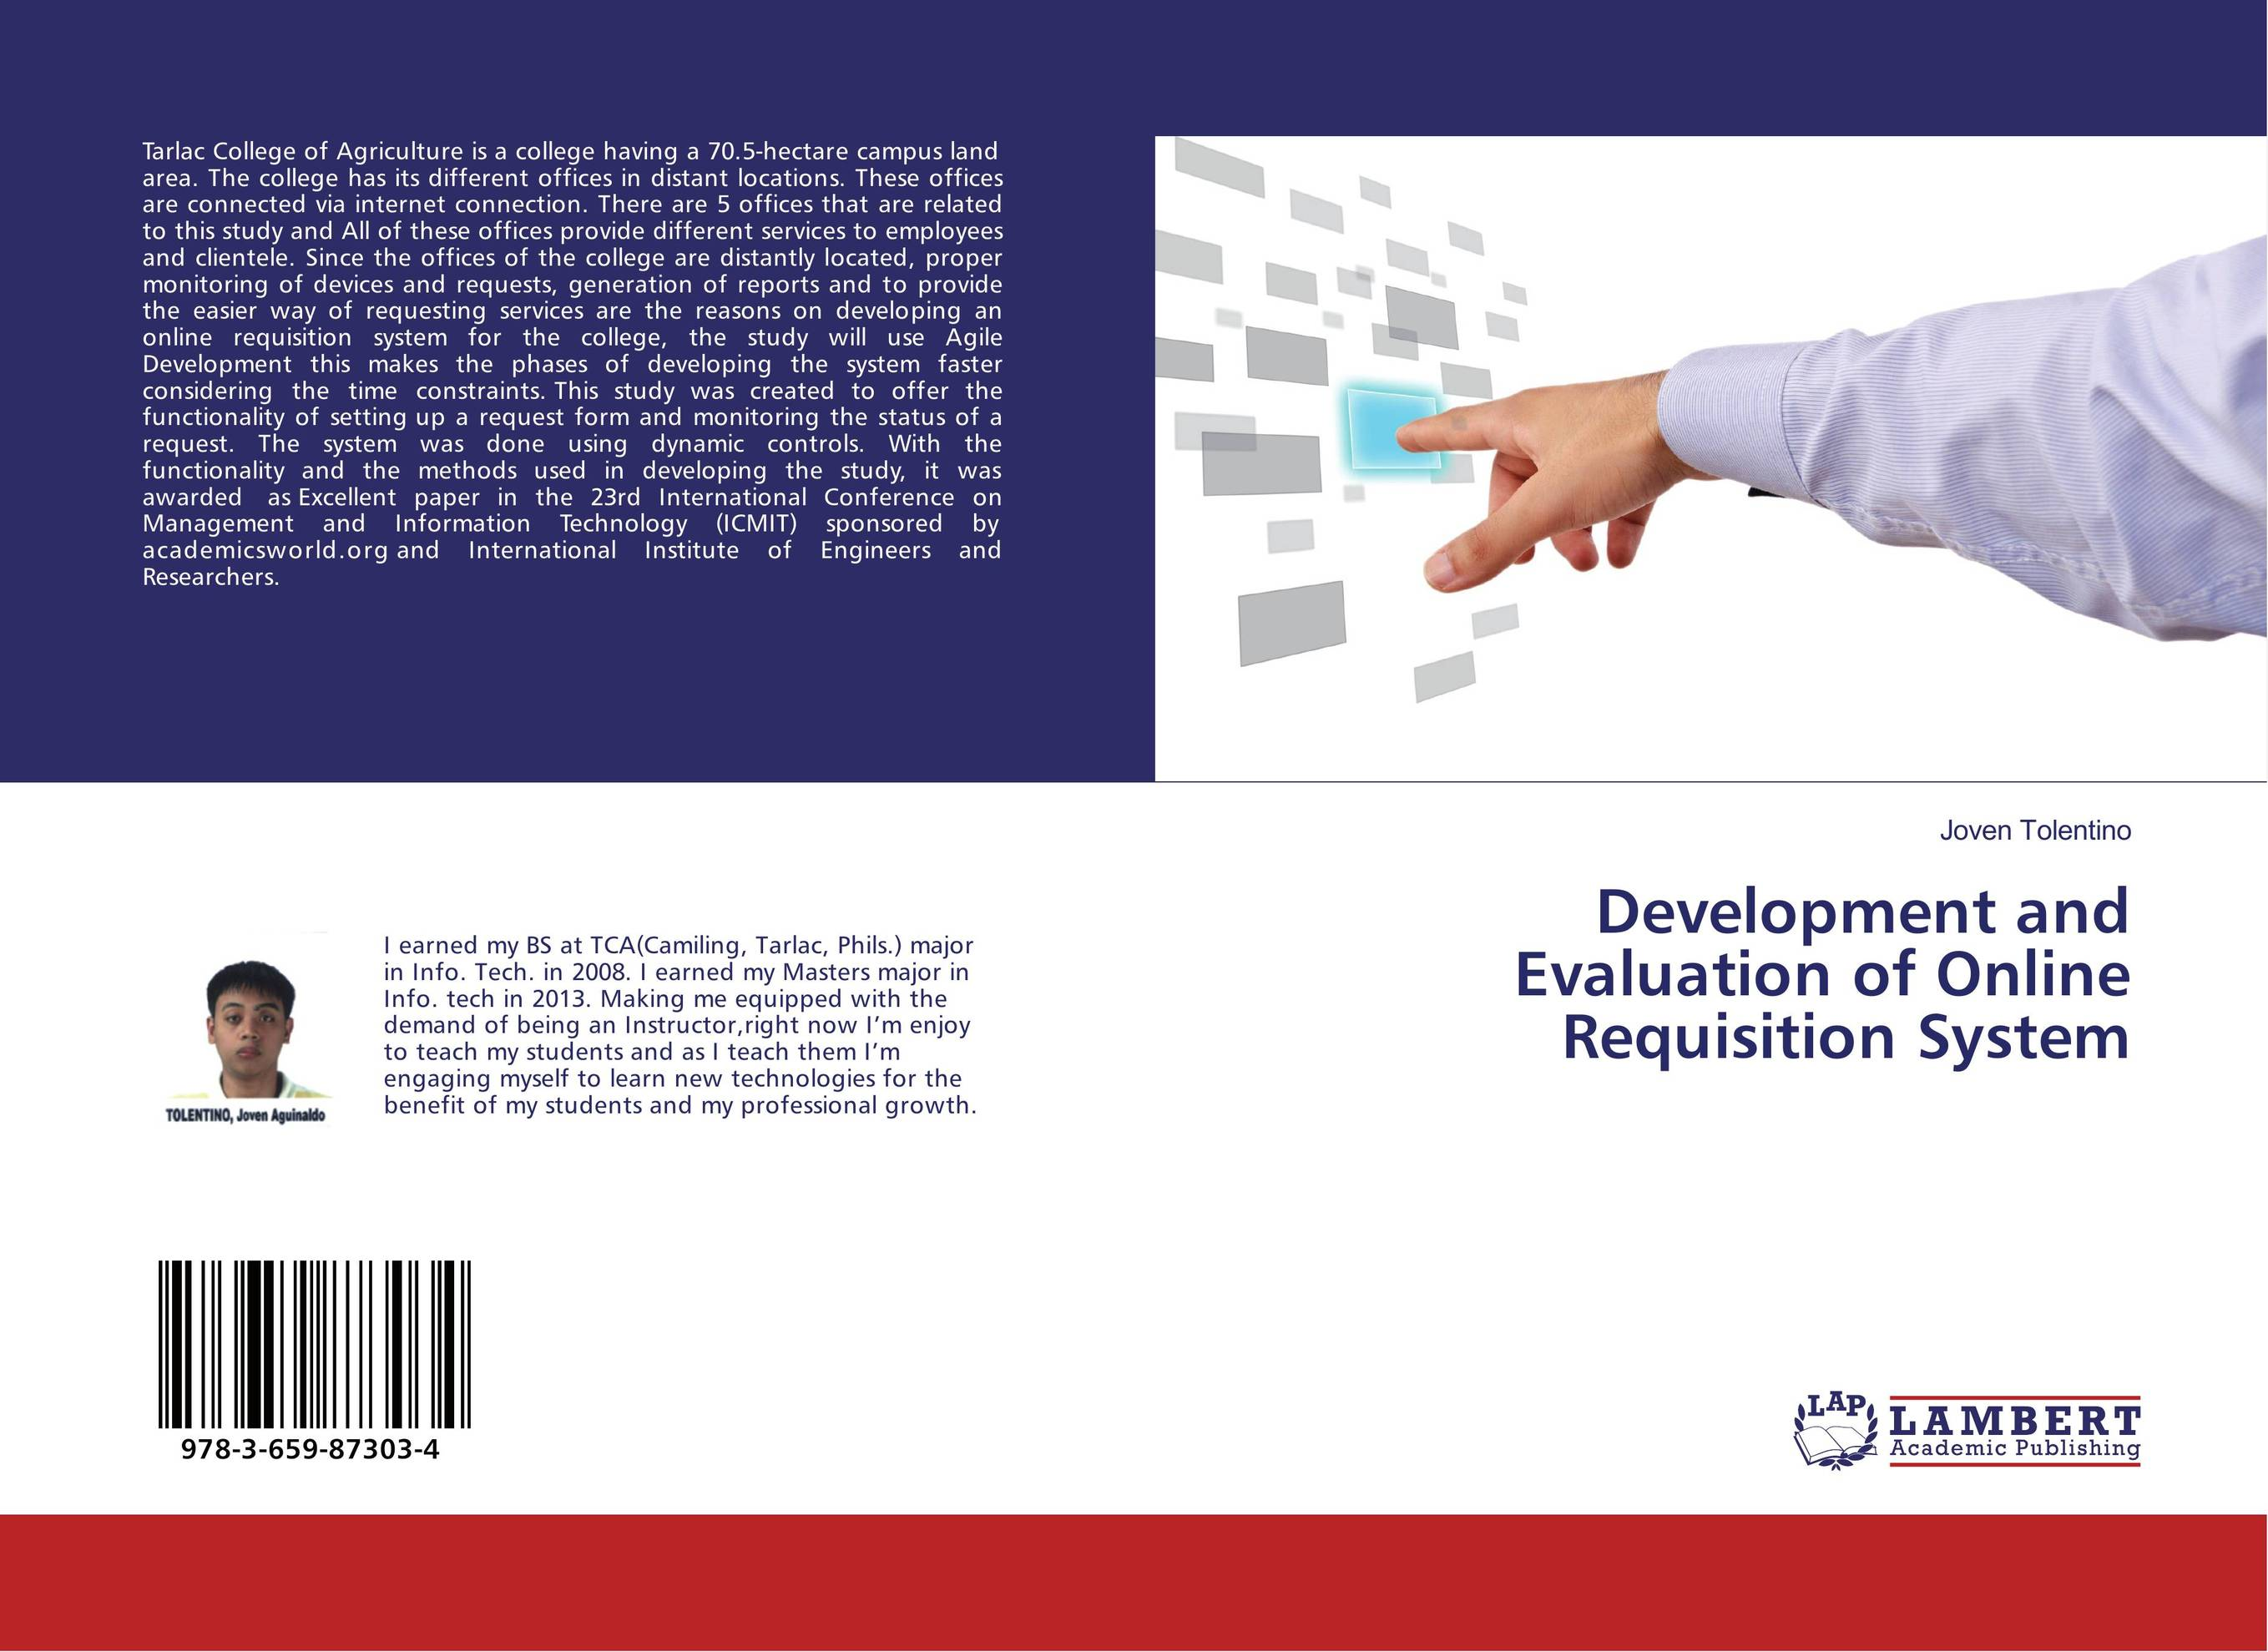 Development and Evaluation of Online Requisition System